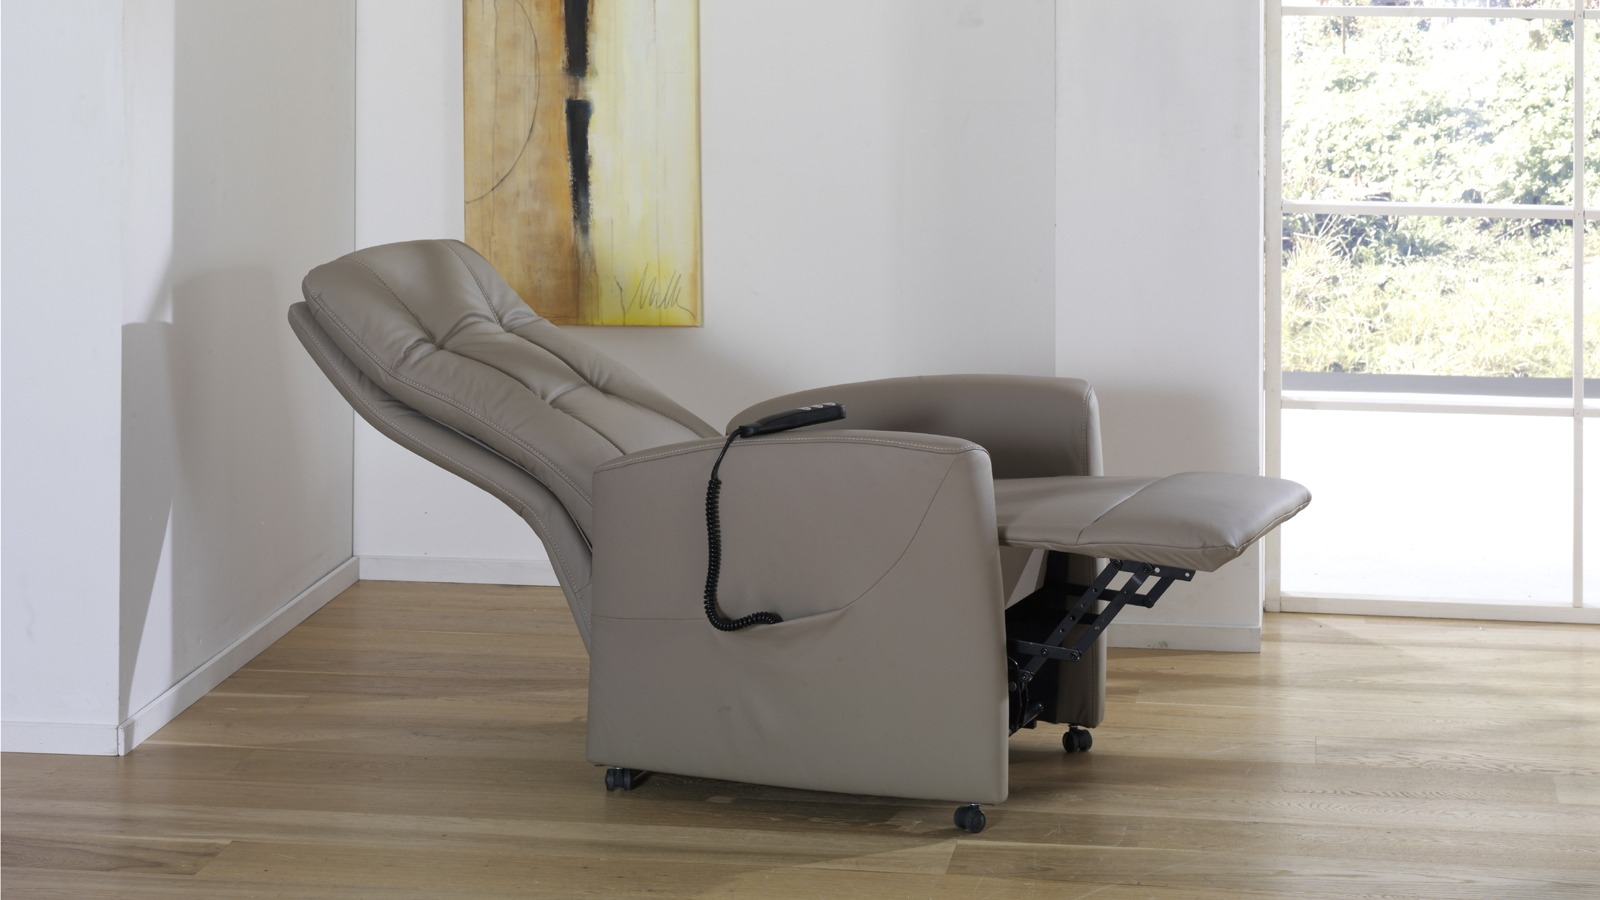 Relaxsessel 9010 ulrich wohnen for Sessel gray 07